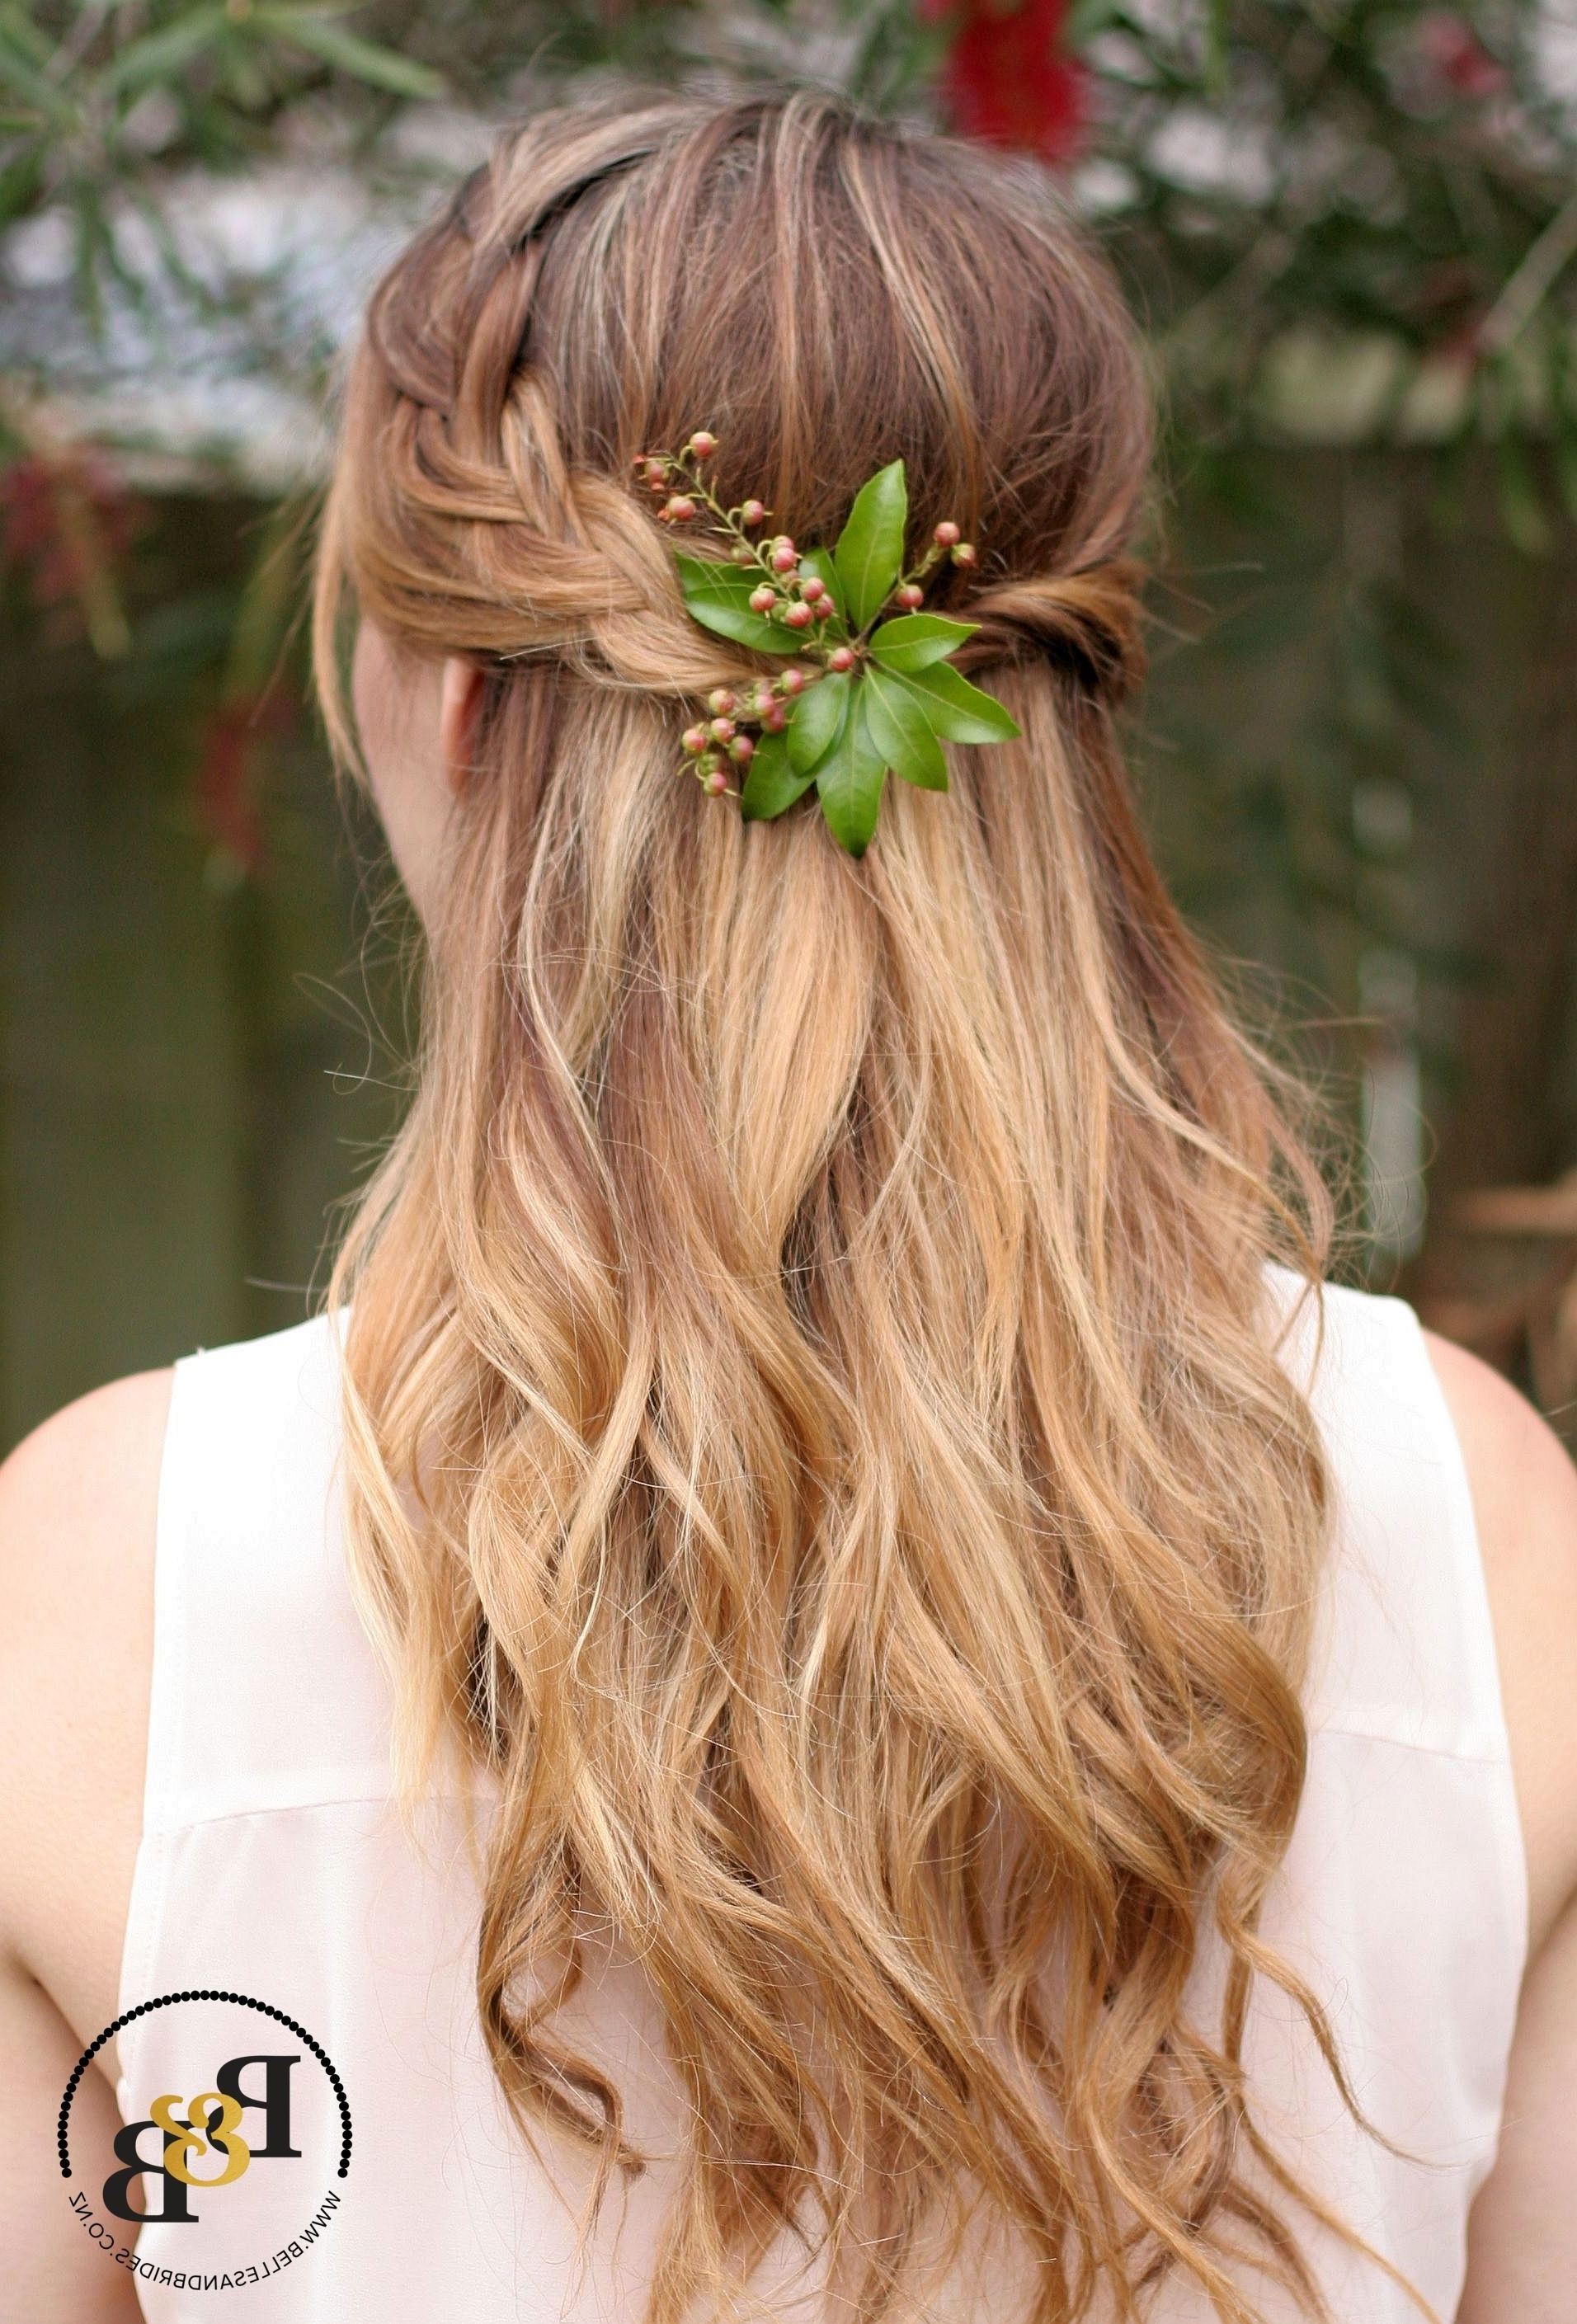 15 Ideas of Half Up Half Down With Braid Wedding Hairstyles